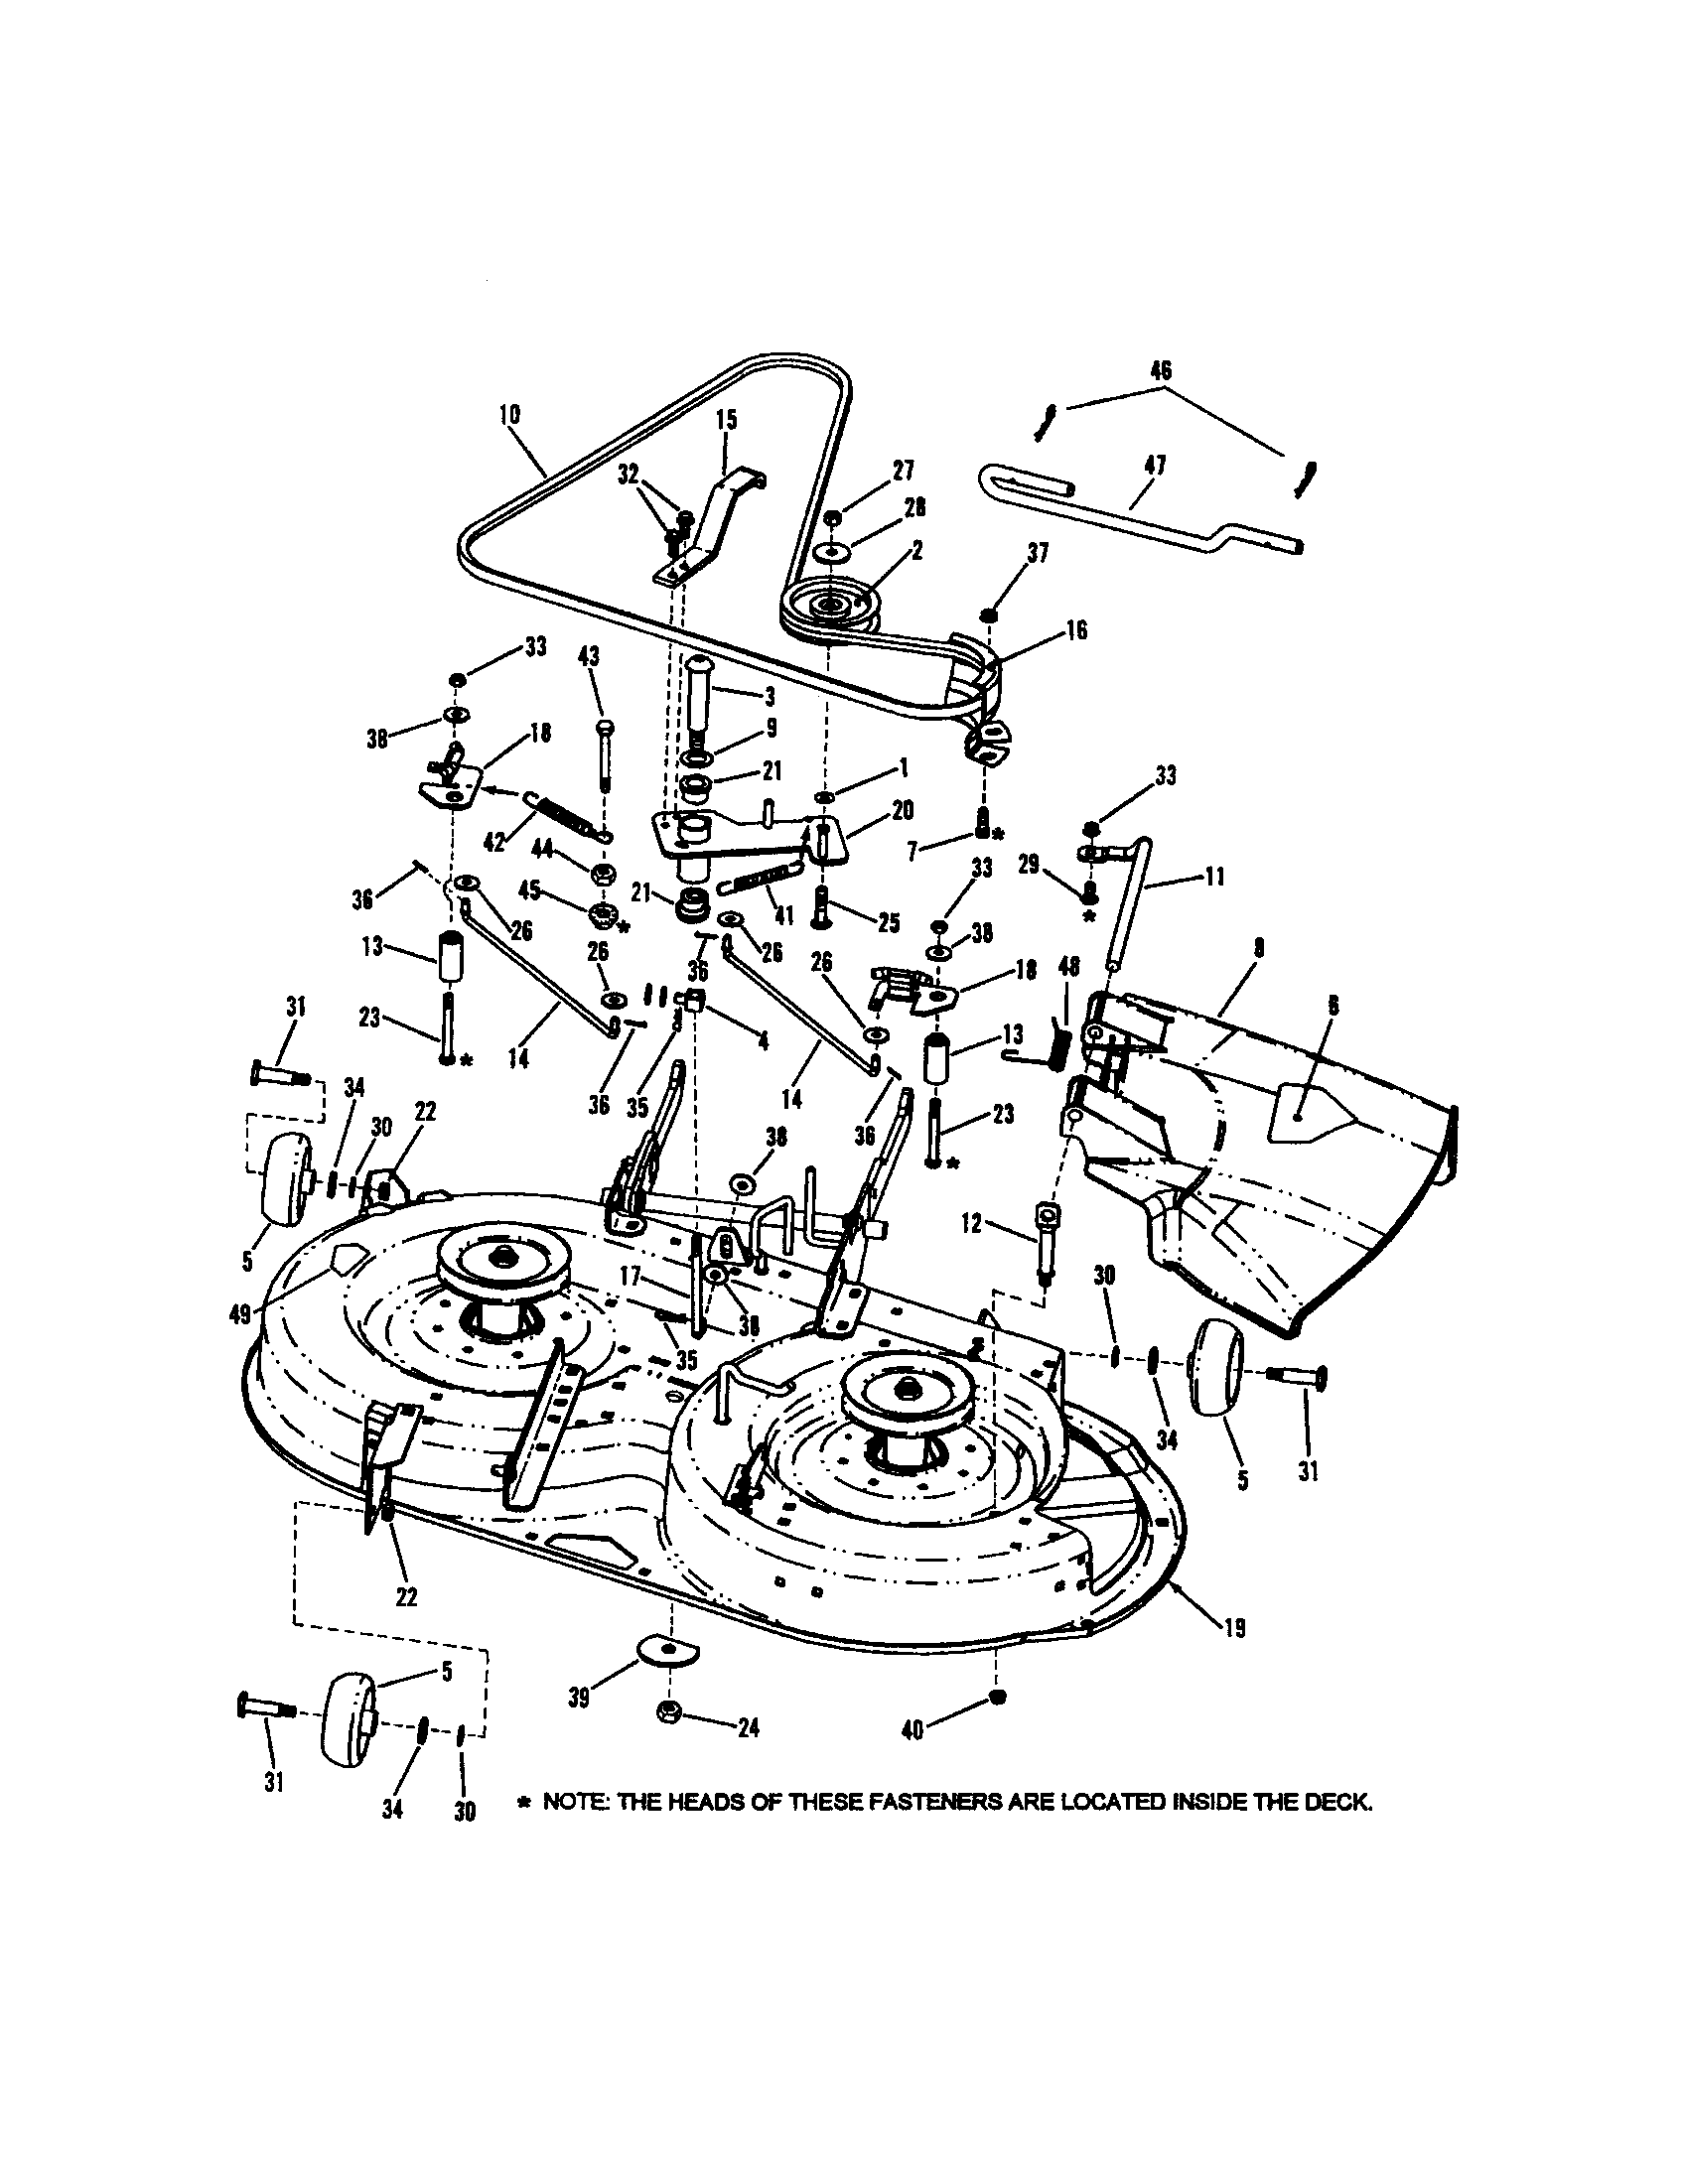 Sears Mower Wiring Diagram Sears Mower Seats Wiring